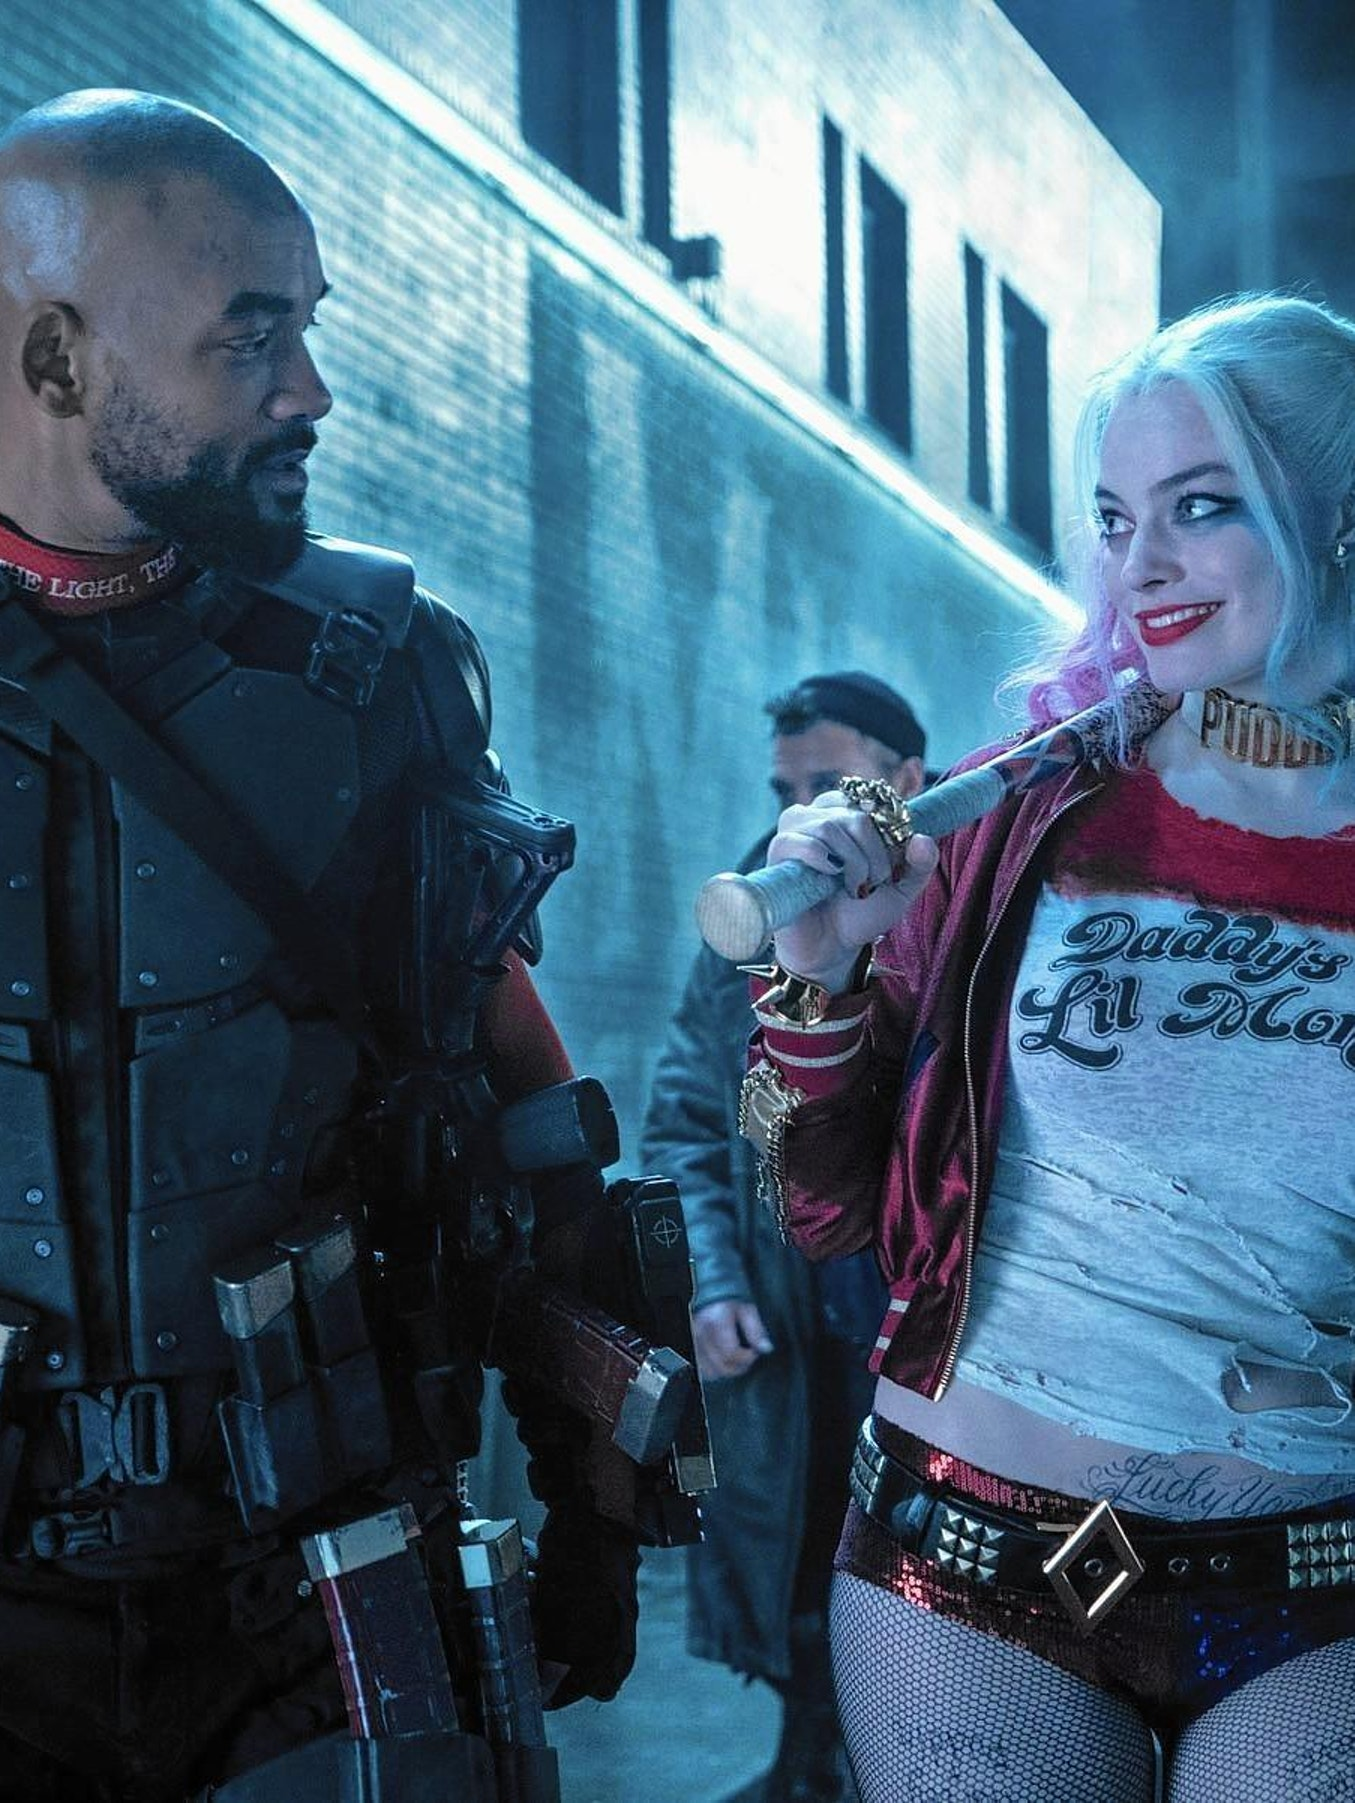 Will Smith as Deadshot and Margot Robbie as Harley Quinn in DC's Suicide Squad